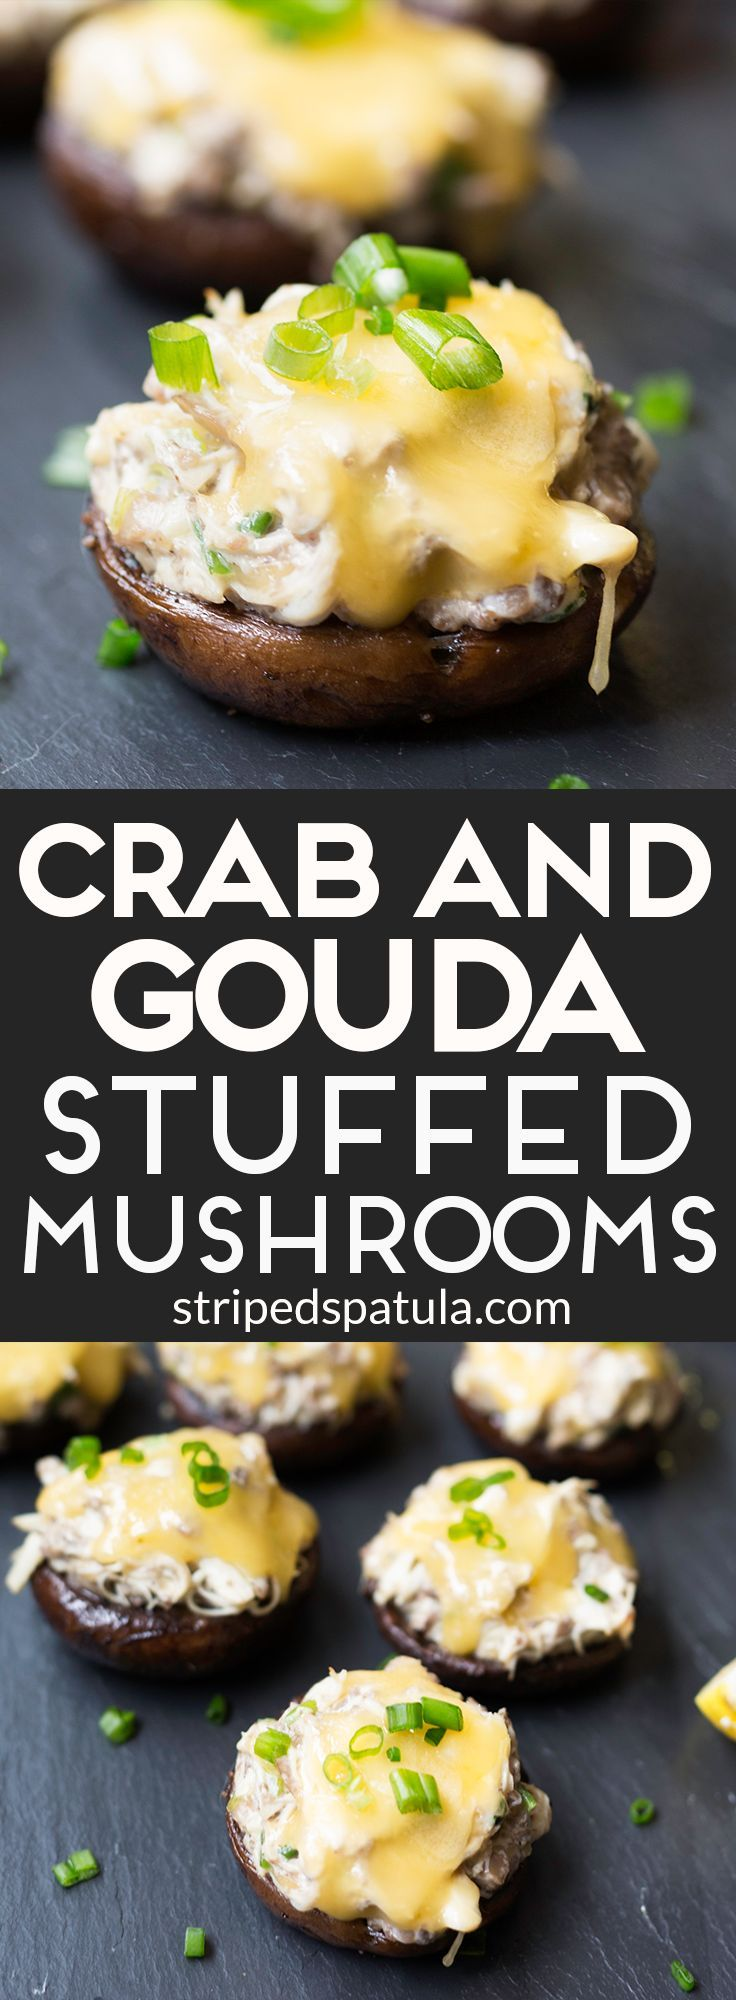 Rich Crab and Gouda Stuffed Mushrooms, with sweet lump crabmeat, garlic, and Dijon, are a perfect appetizer or side dish for any celebration. (Food Recipes Appetizers)